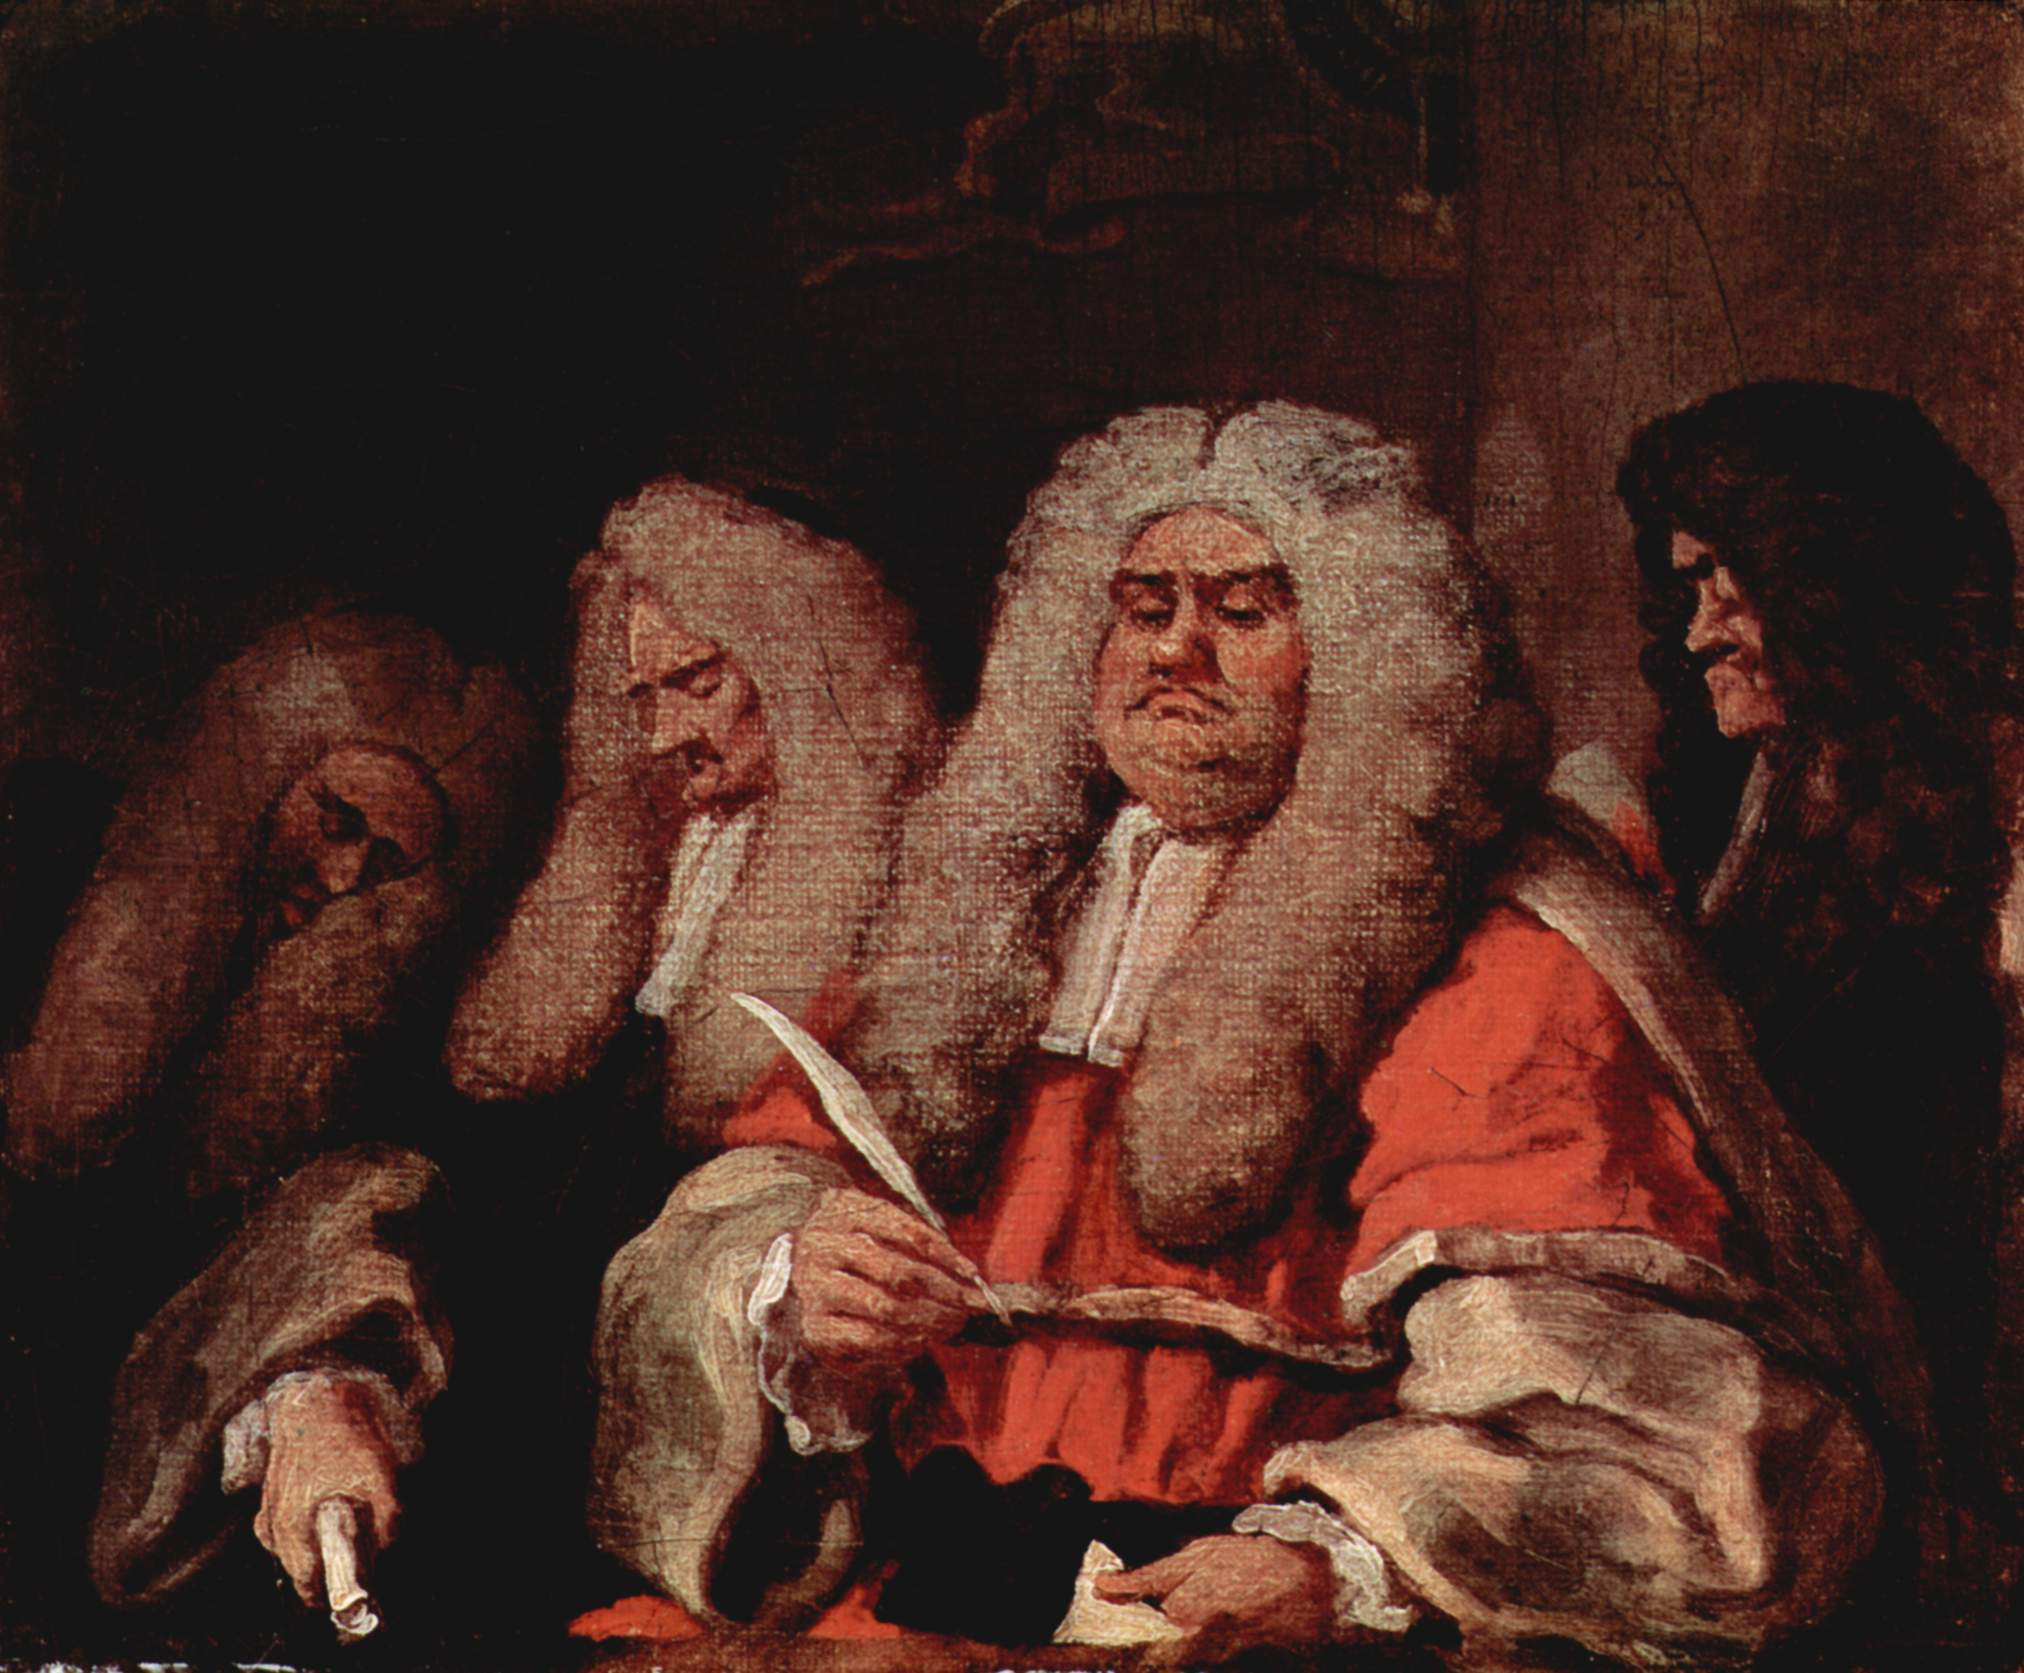 Jurists by William Hogarth. (Courtesy of The Yorck Project, Wikimedia Commons)